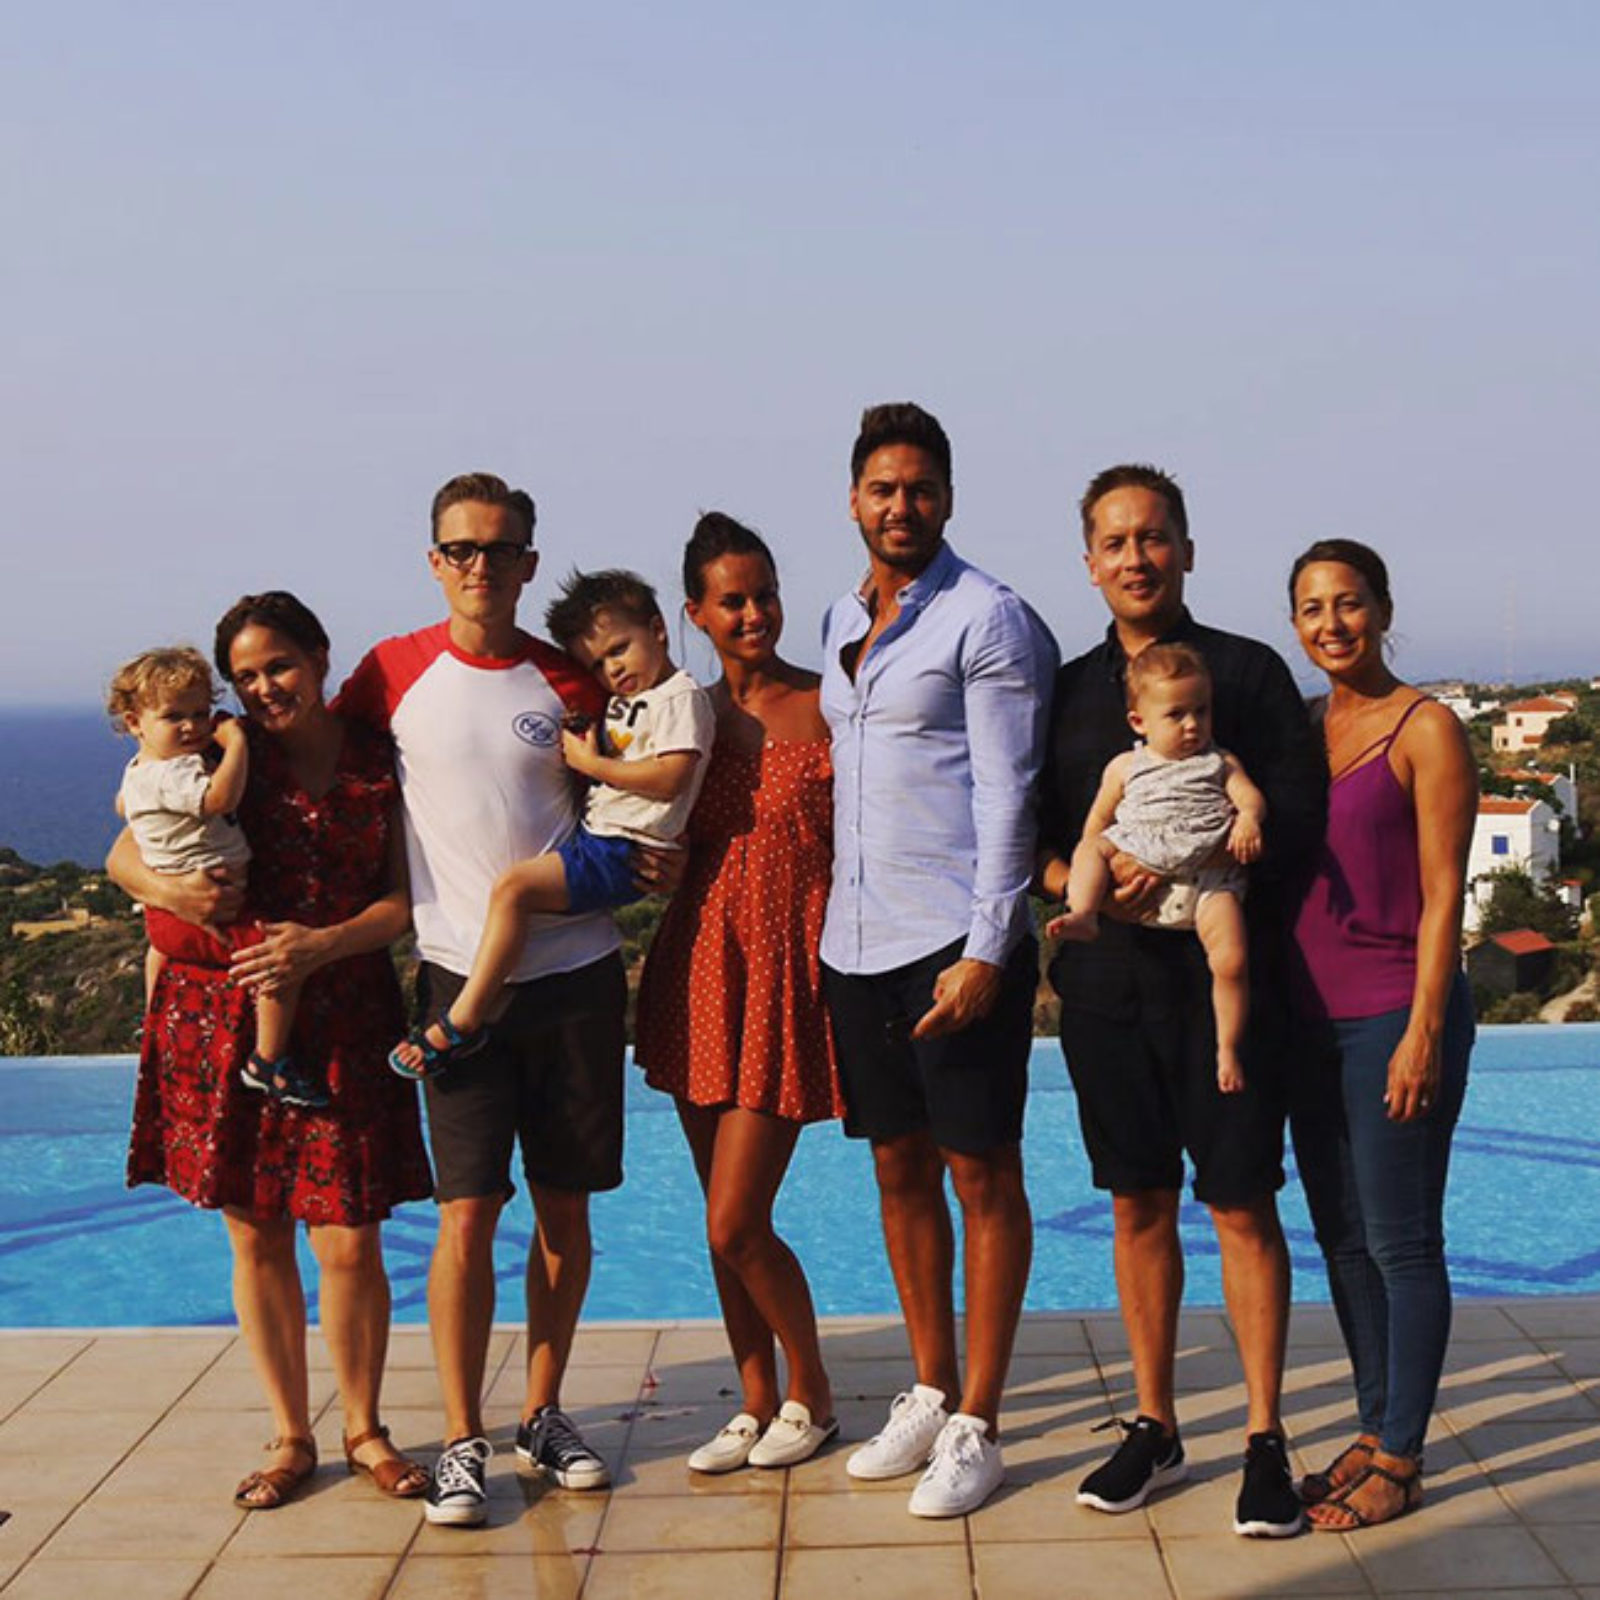 Our big family holiday!